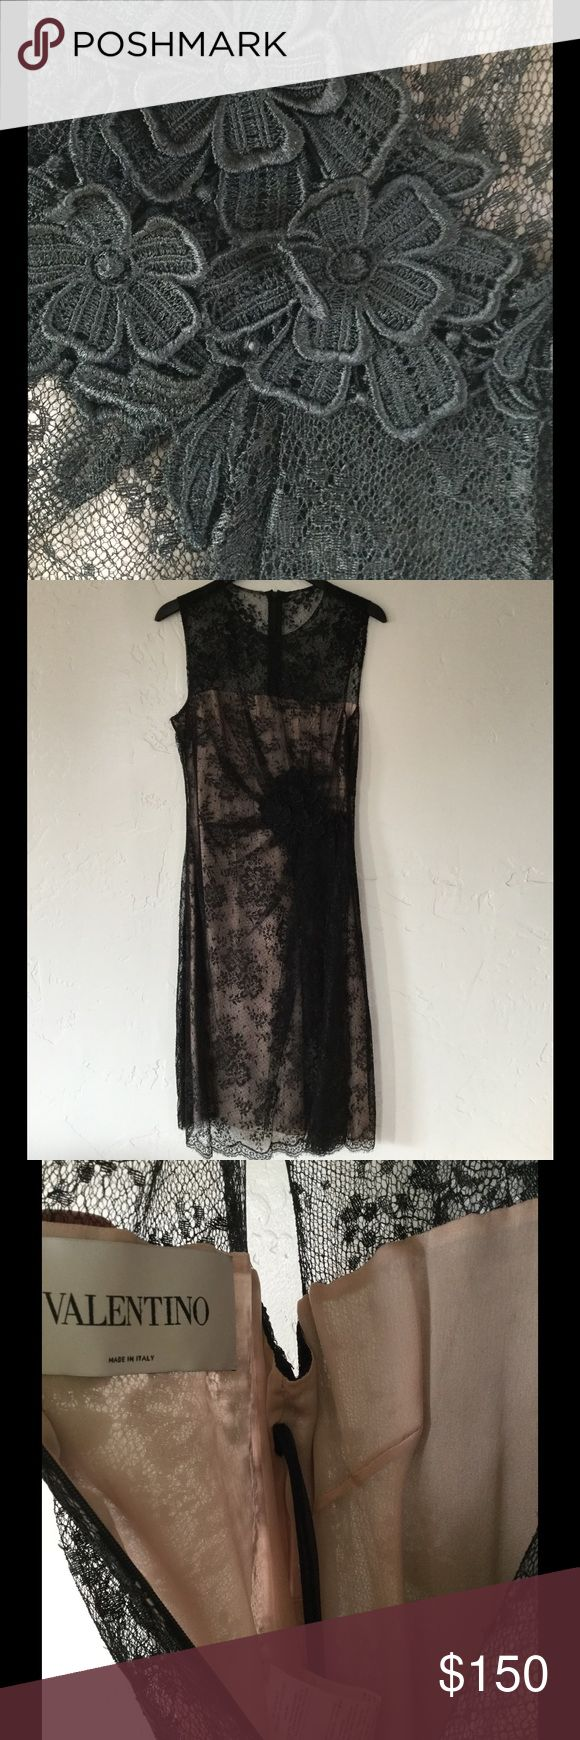 Valentino Slip Dress Black Lace Size 6 Italy Beautiful. needs a little ironing to the flowers. Valentino Spa. Italy Valentino Dresses Maxi